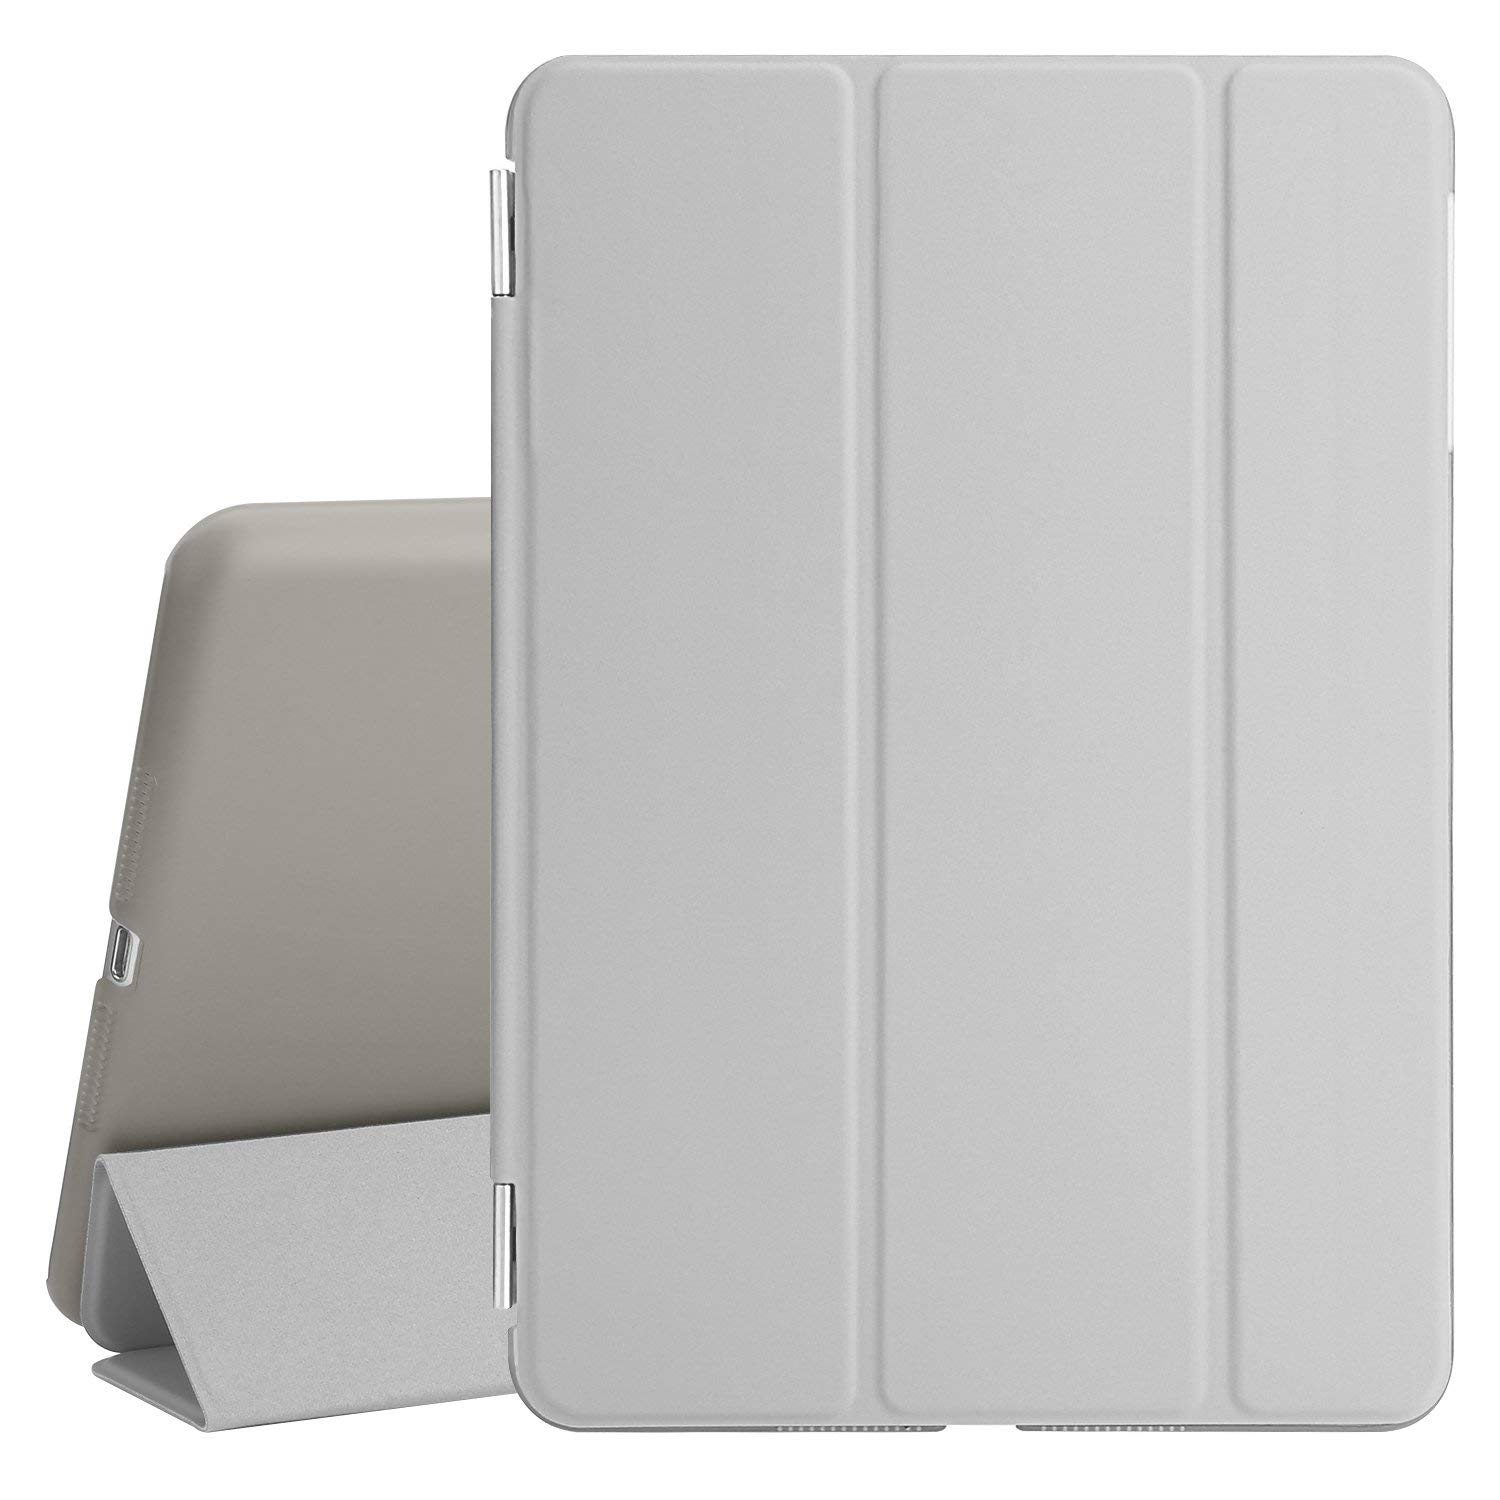 Smart Case Ipad Mini 4 Magnética Frontal + Traseira A1550 A1538 Cinza